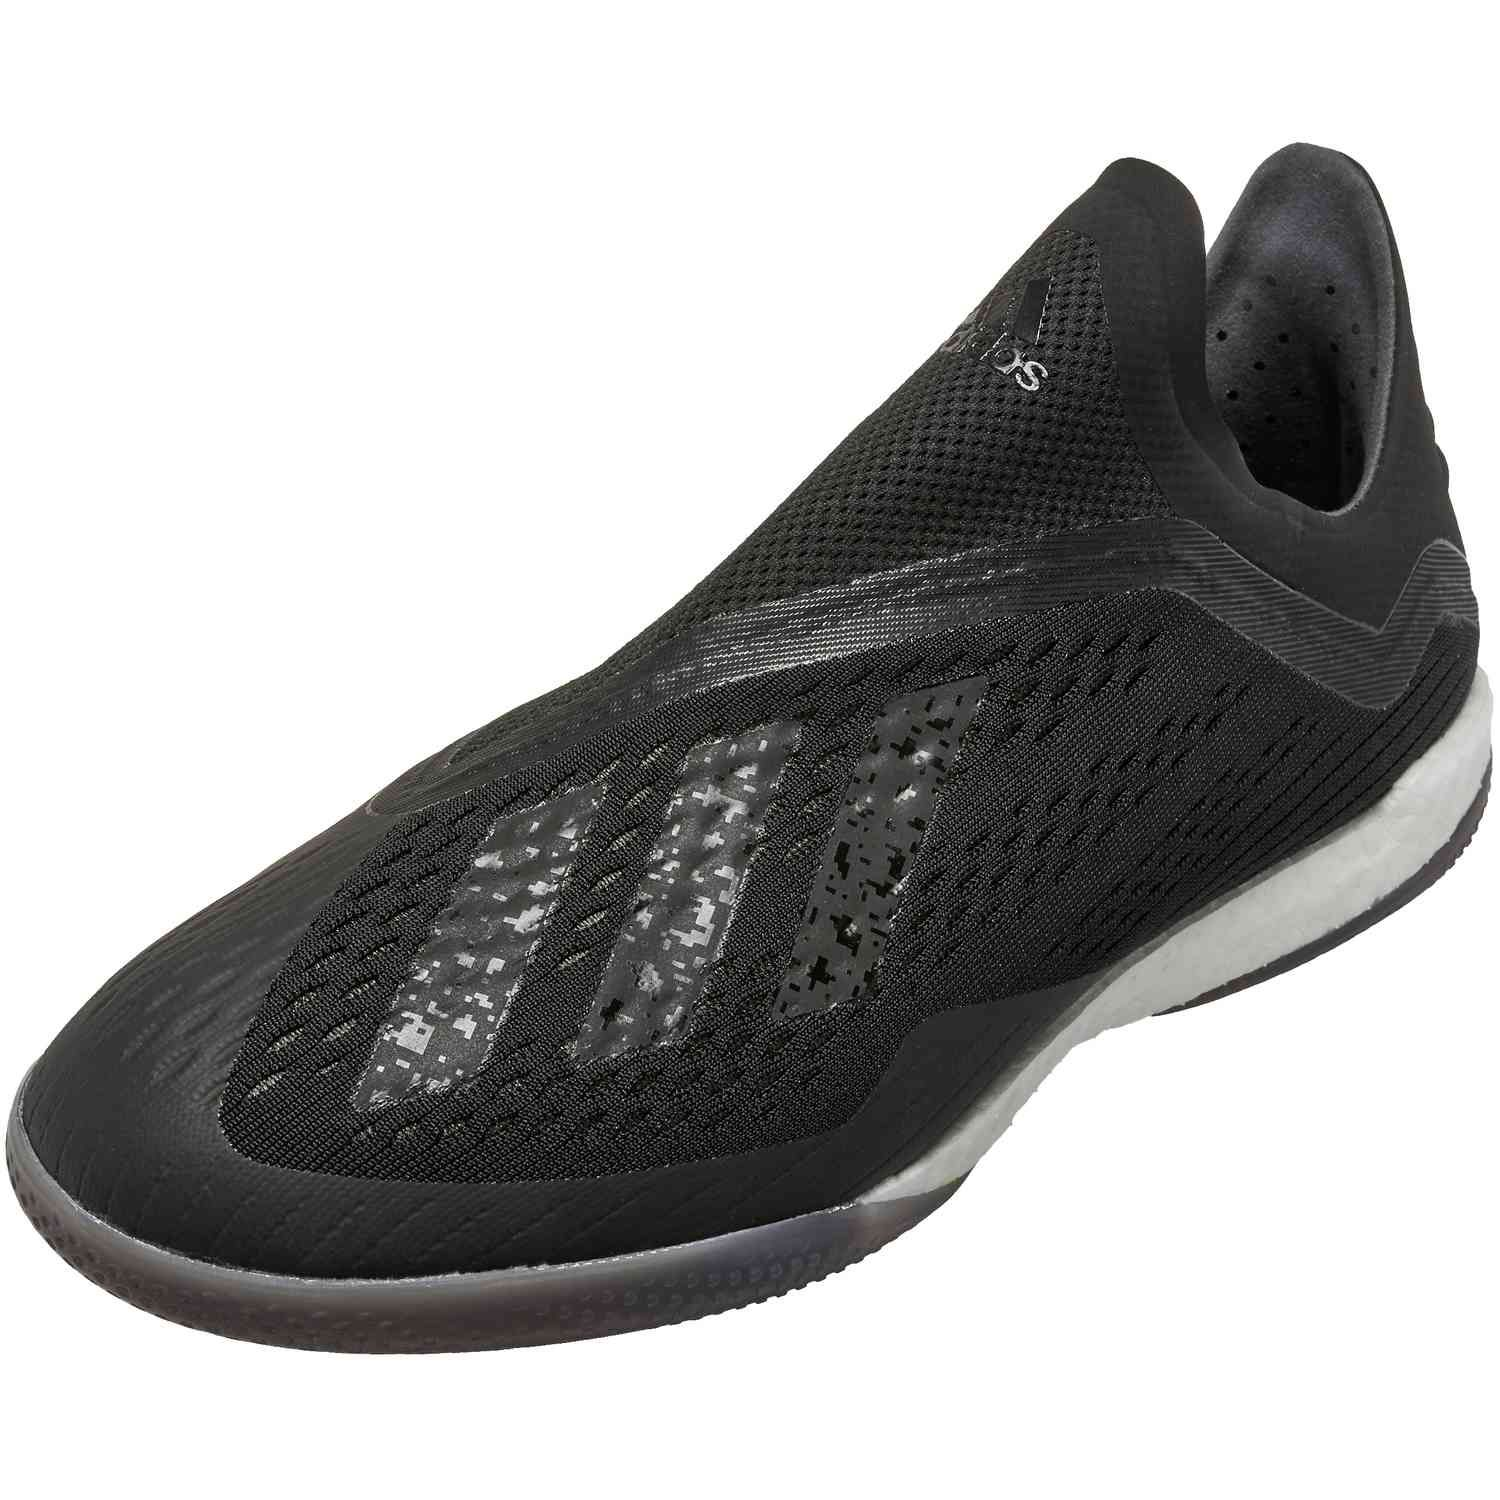 save off 871c6 e7447 Shadow Mode adidas X Tango indoor soccer shoes. Get them at SoccerPro today!